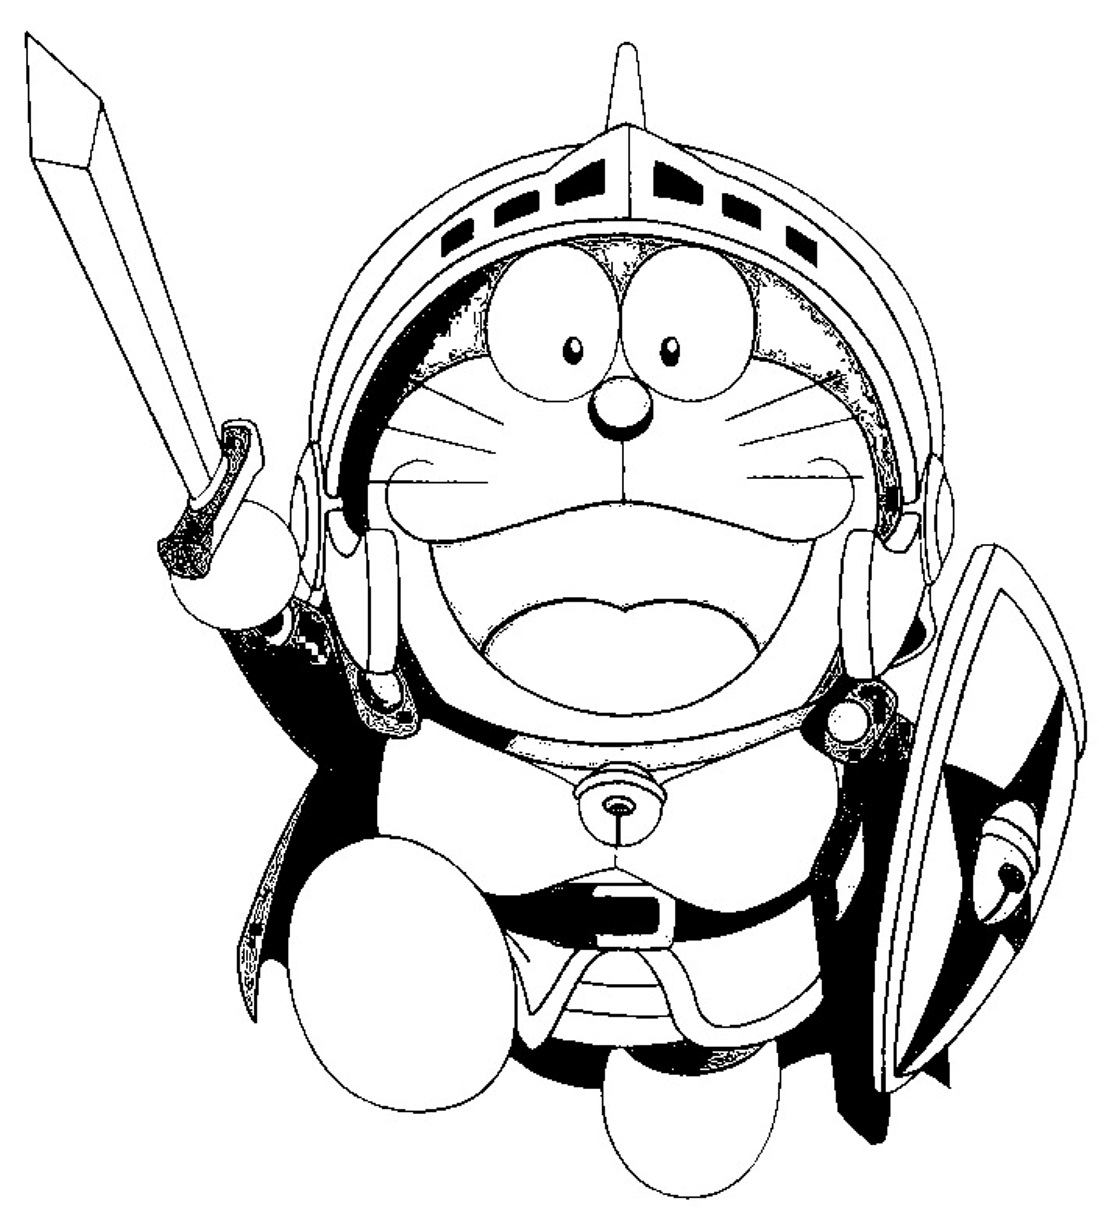 Doraemon coloring page | Free Printable Coloring Pages | 1217x1106